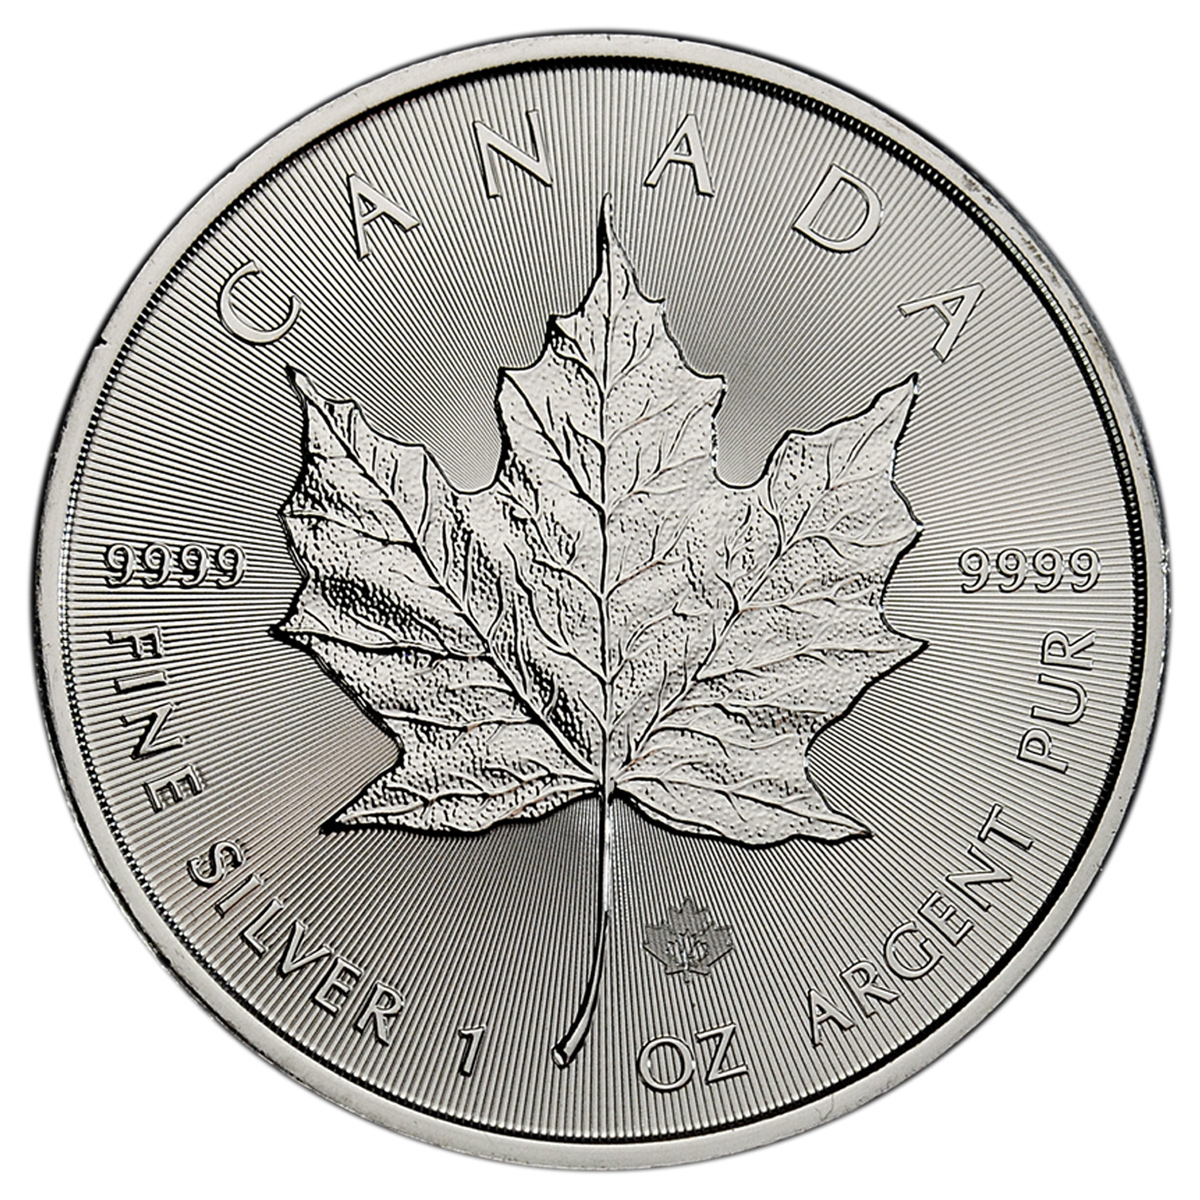 2015 Canada 1 Oz Silver Maple Leaf 5 Gem Bu Moderncoinmart